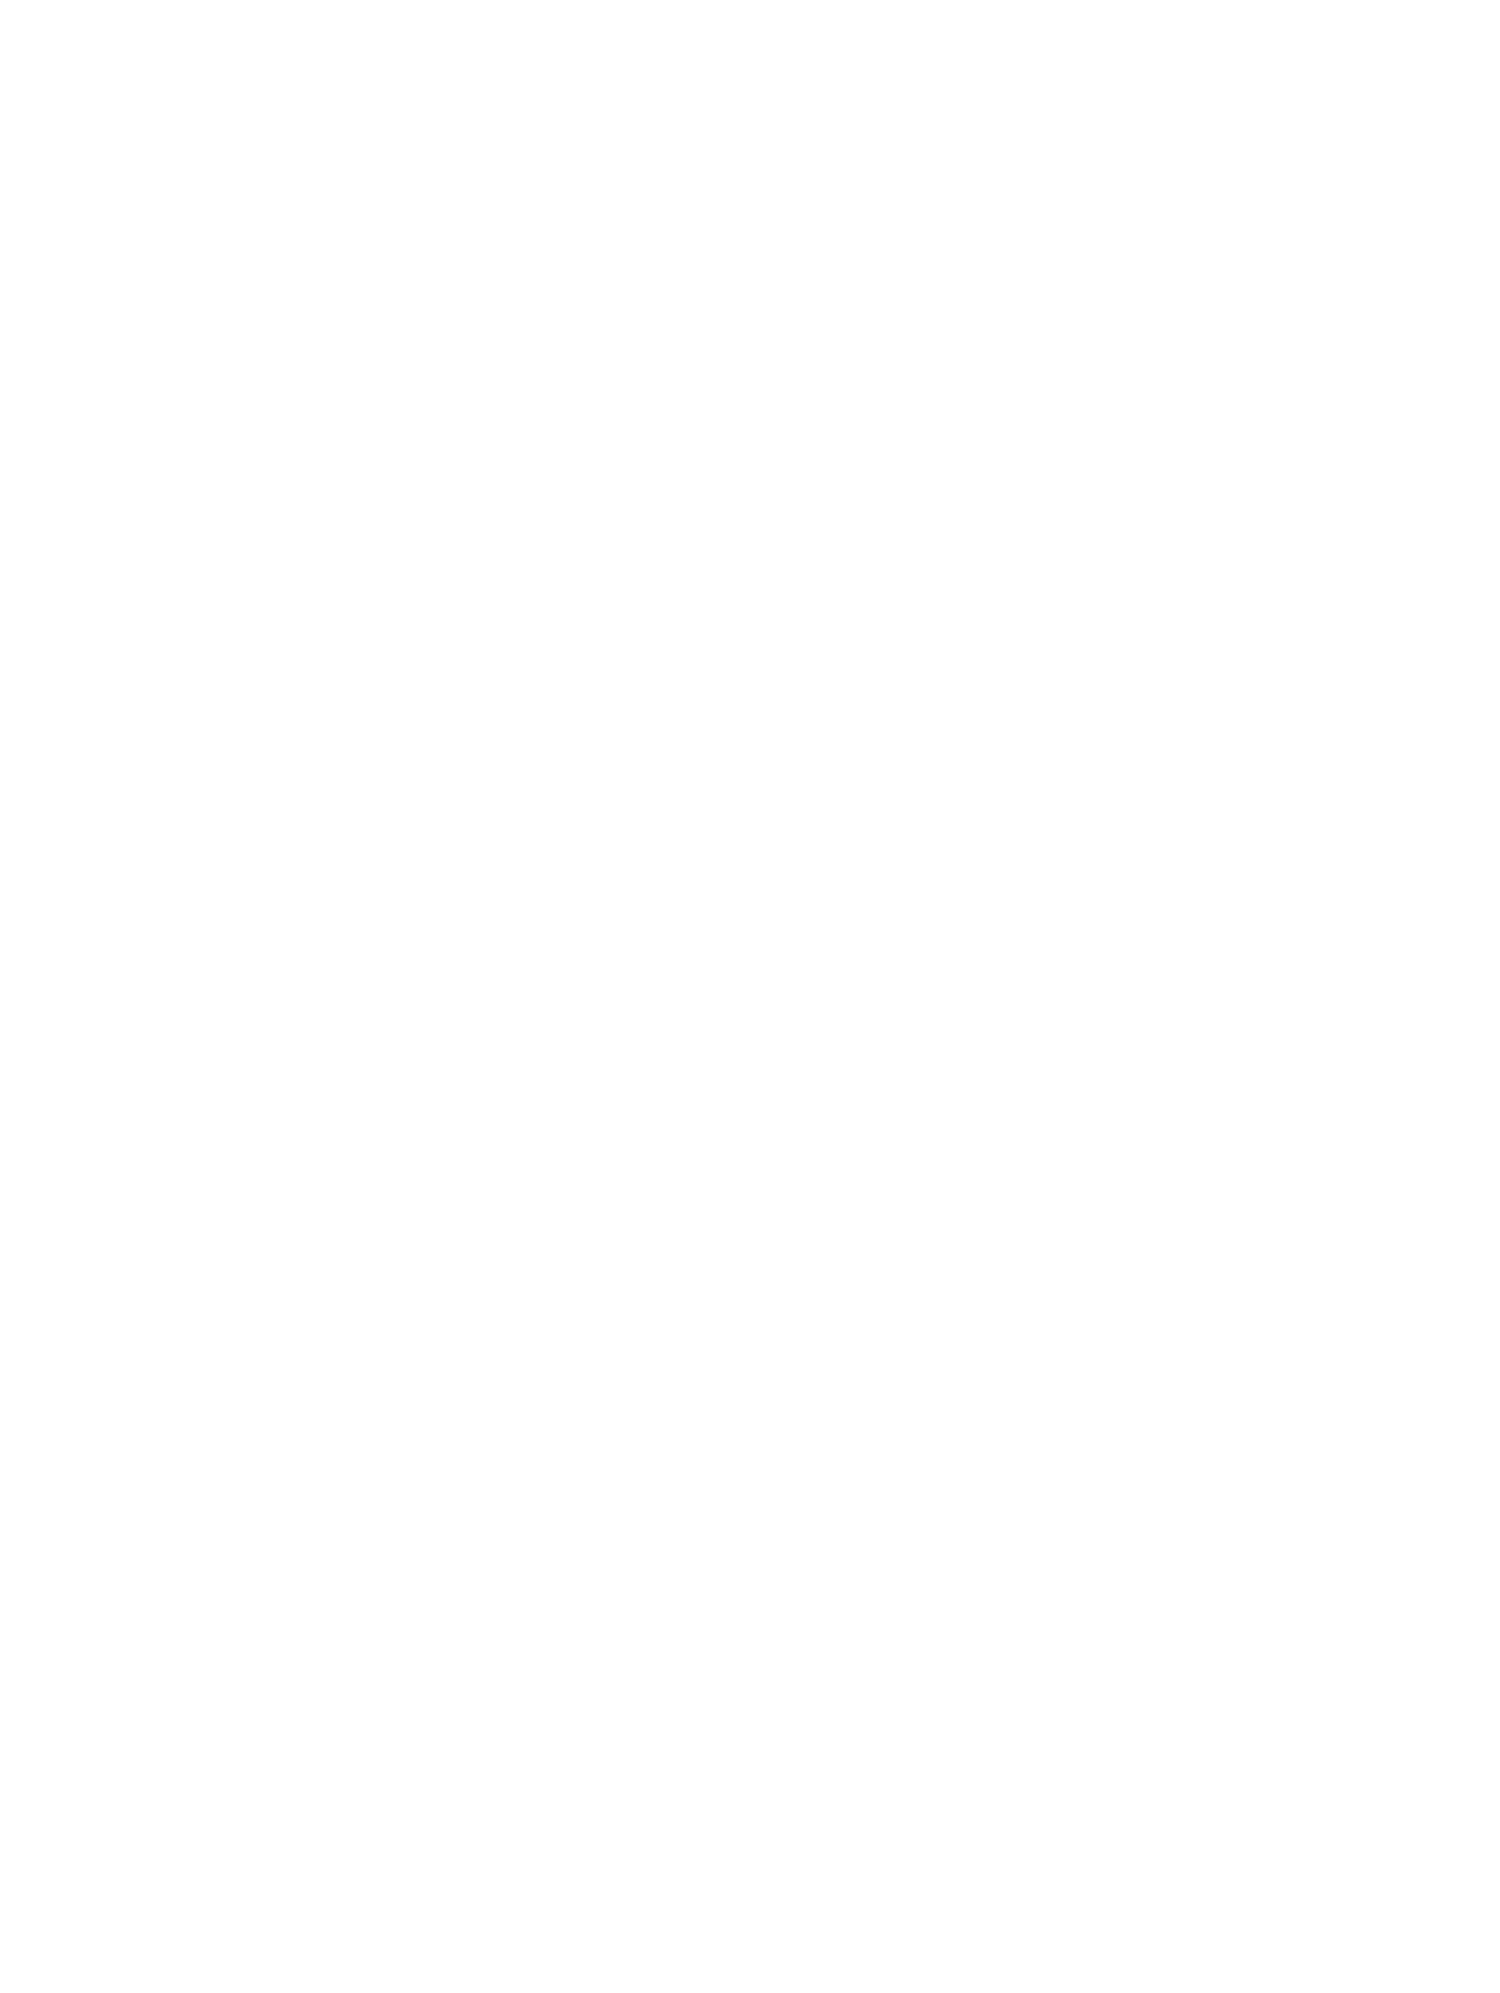 Riverport Trading, home of high-quality, ethically sourced specialty foods from Europe!